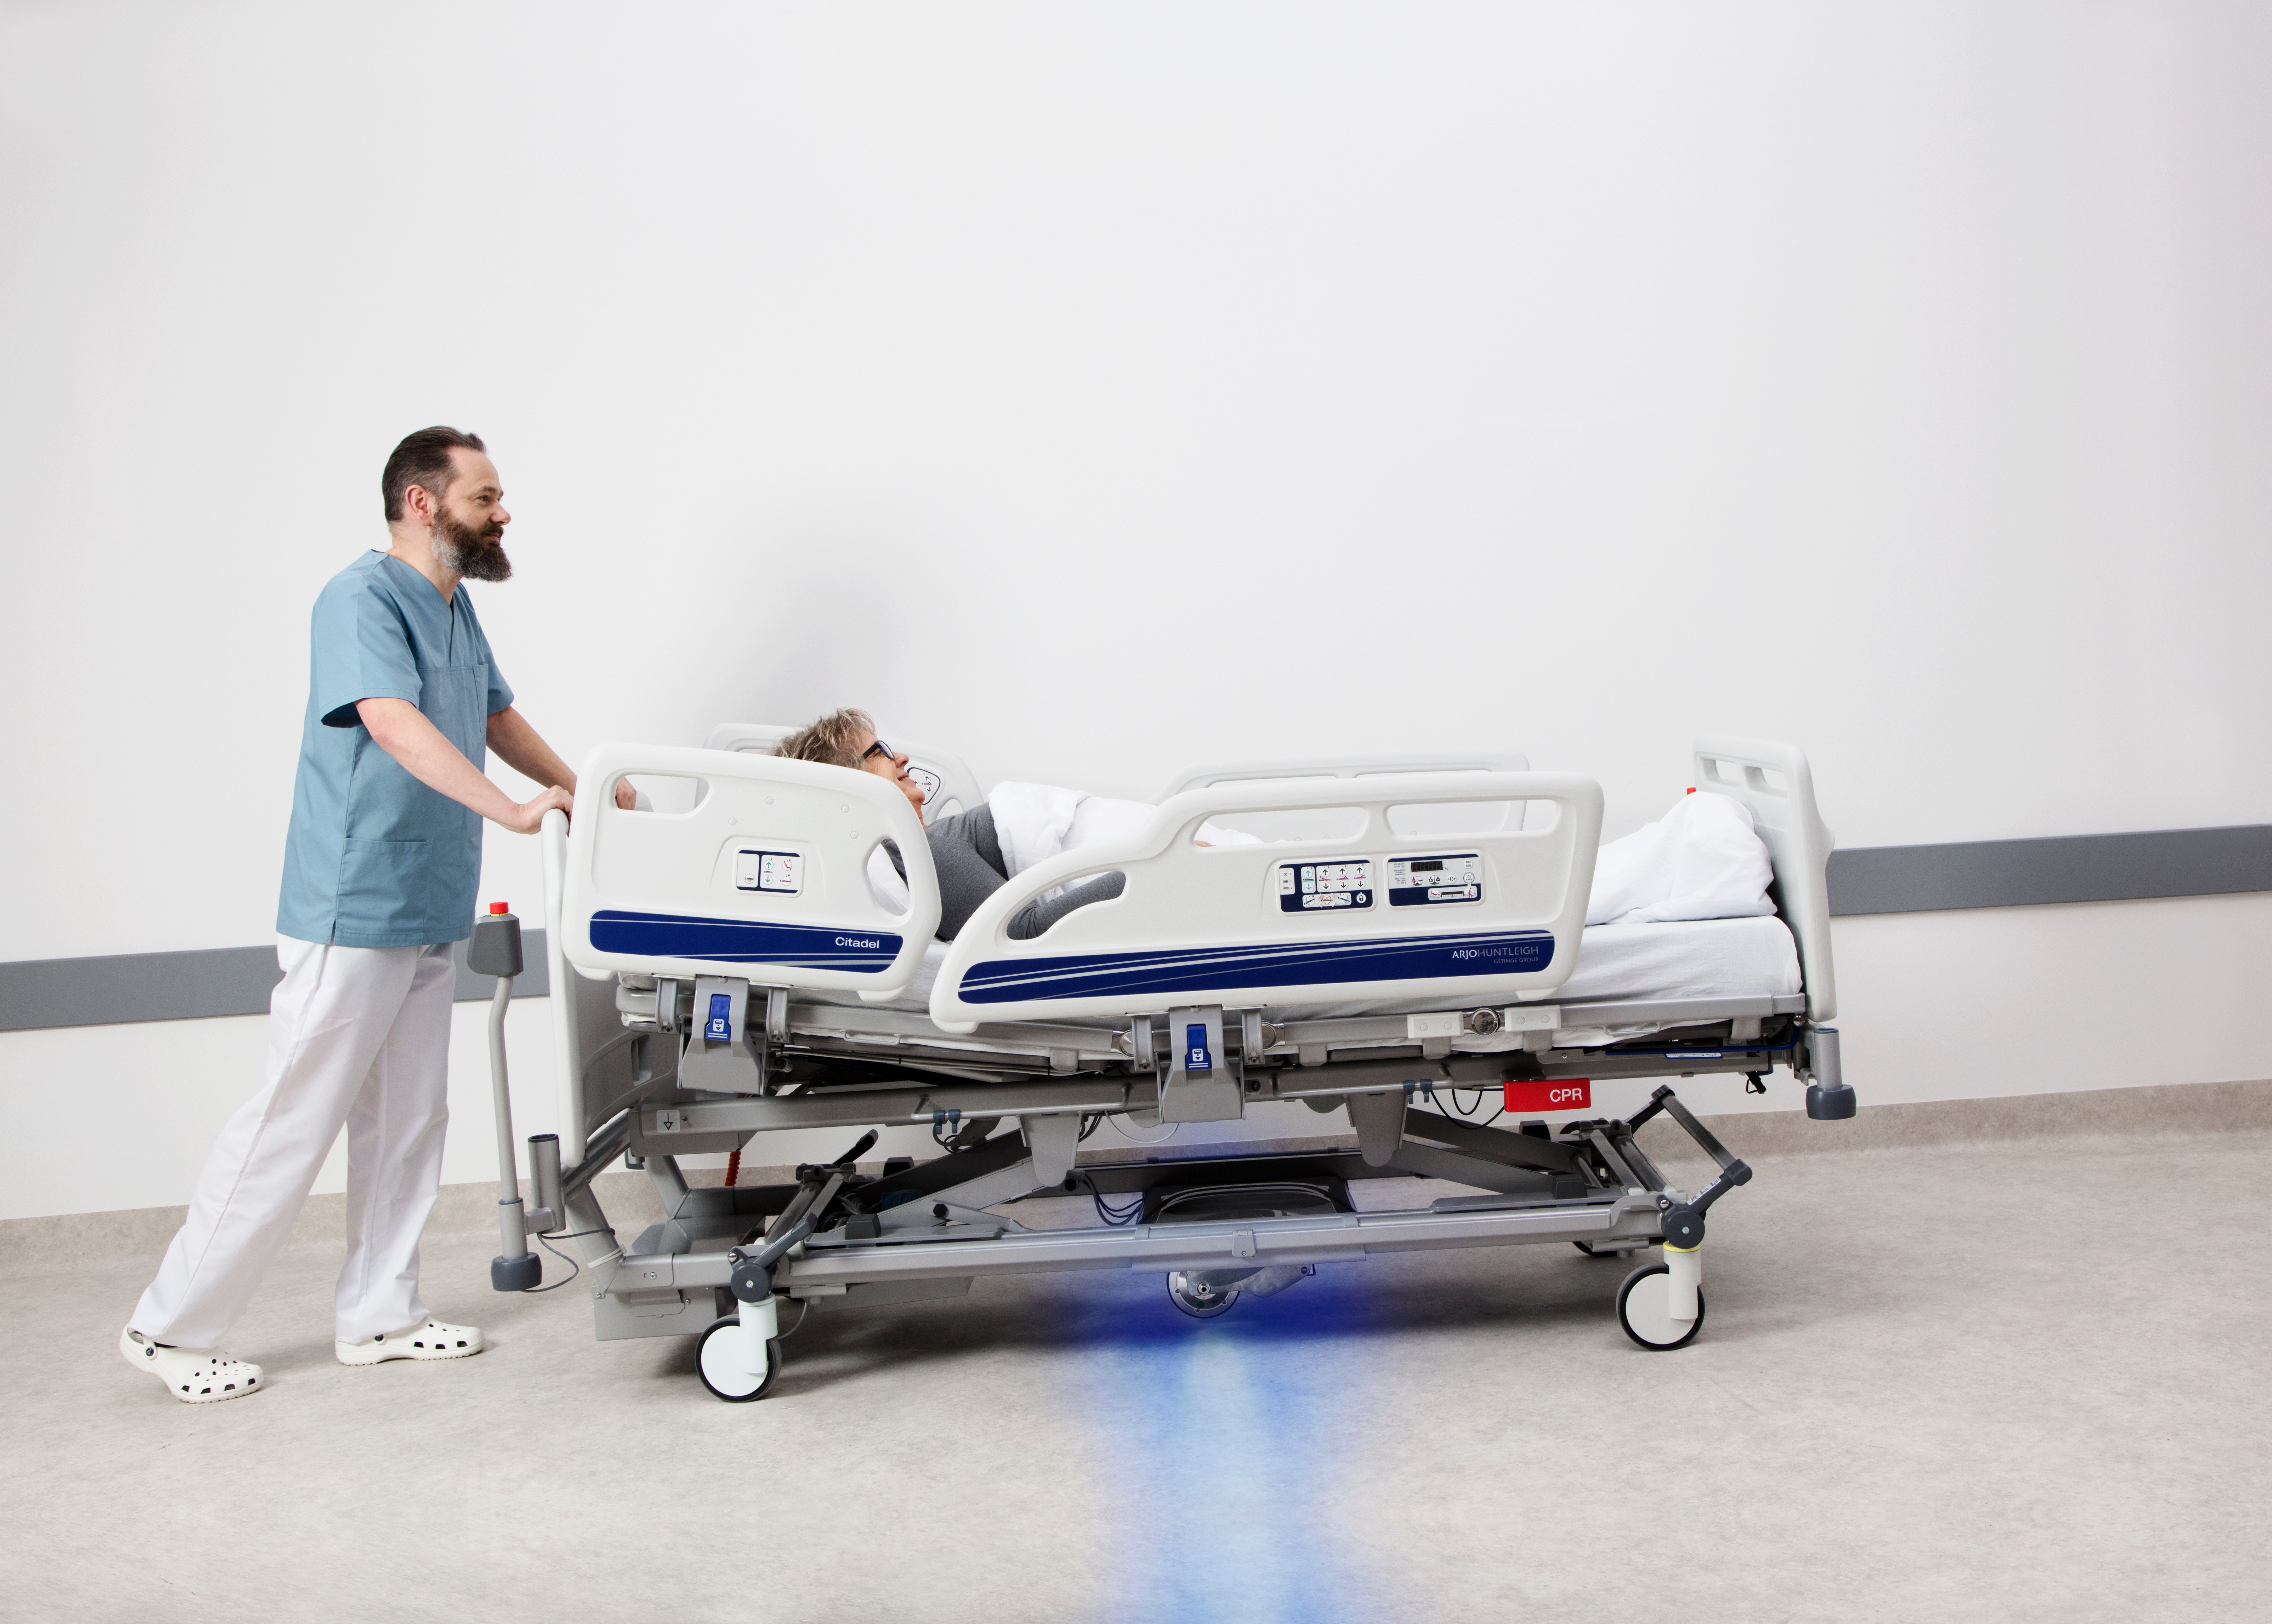 What technologies are used to aid caregivers in transporting patients on hospital beds?